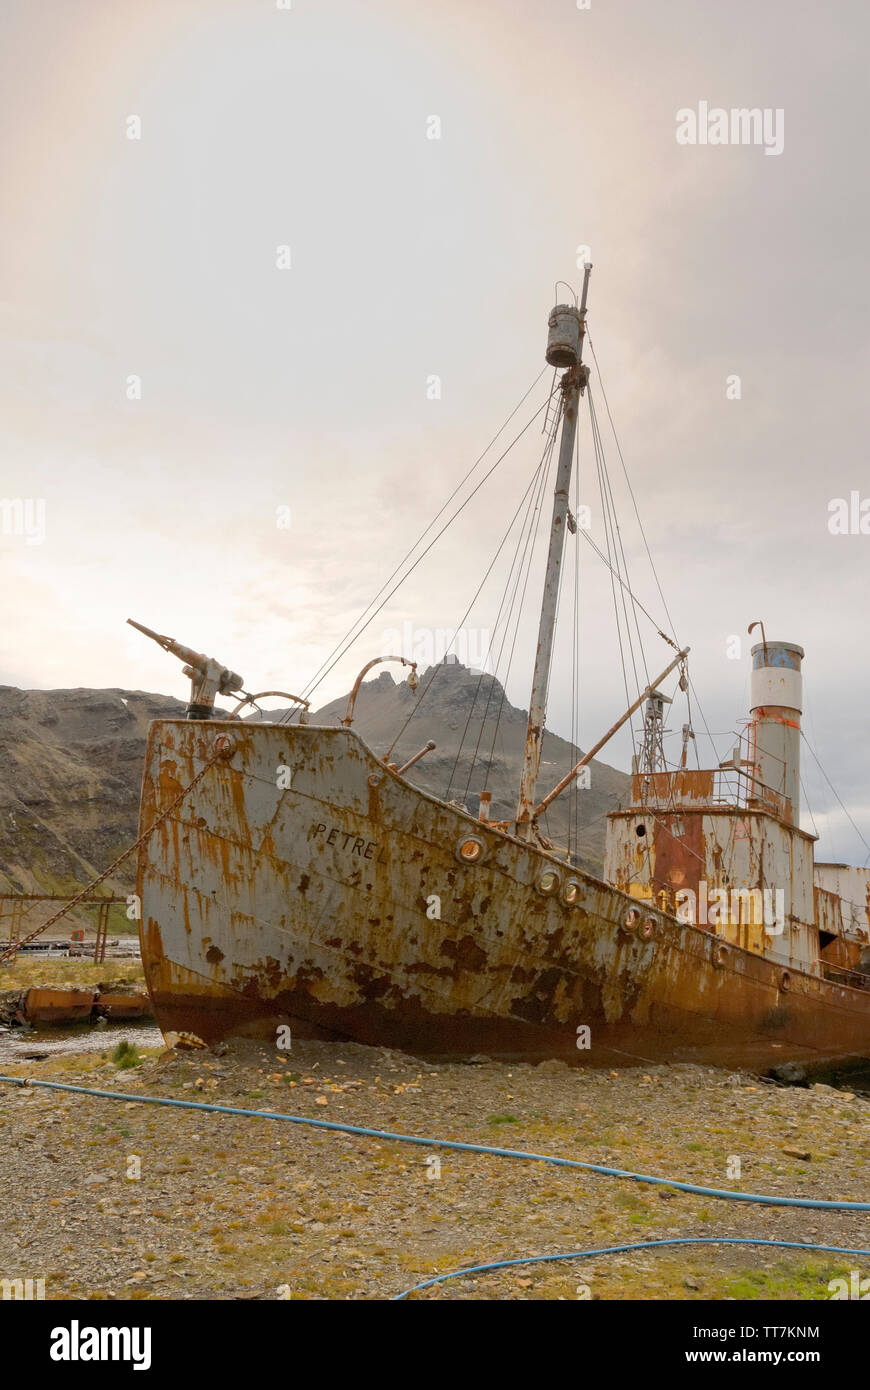 Remains of the old whaleing station at Grytviken, South Georgia, Antartica - Stock Image